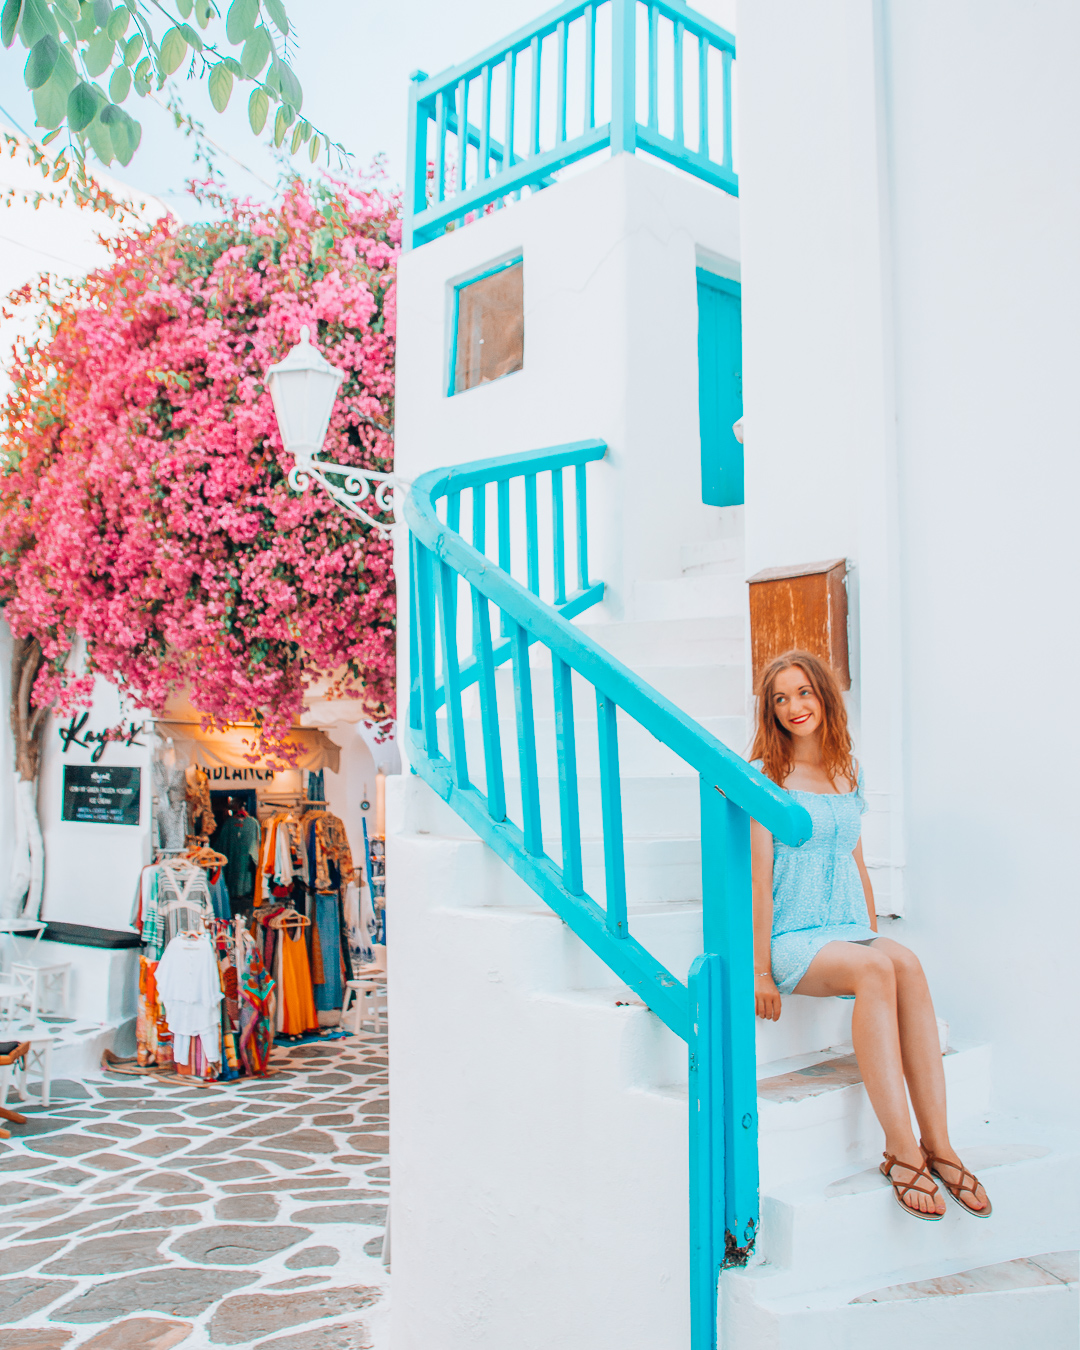 Girl sitting on stairs in Mykonos and a pink tree